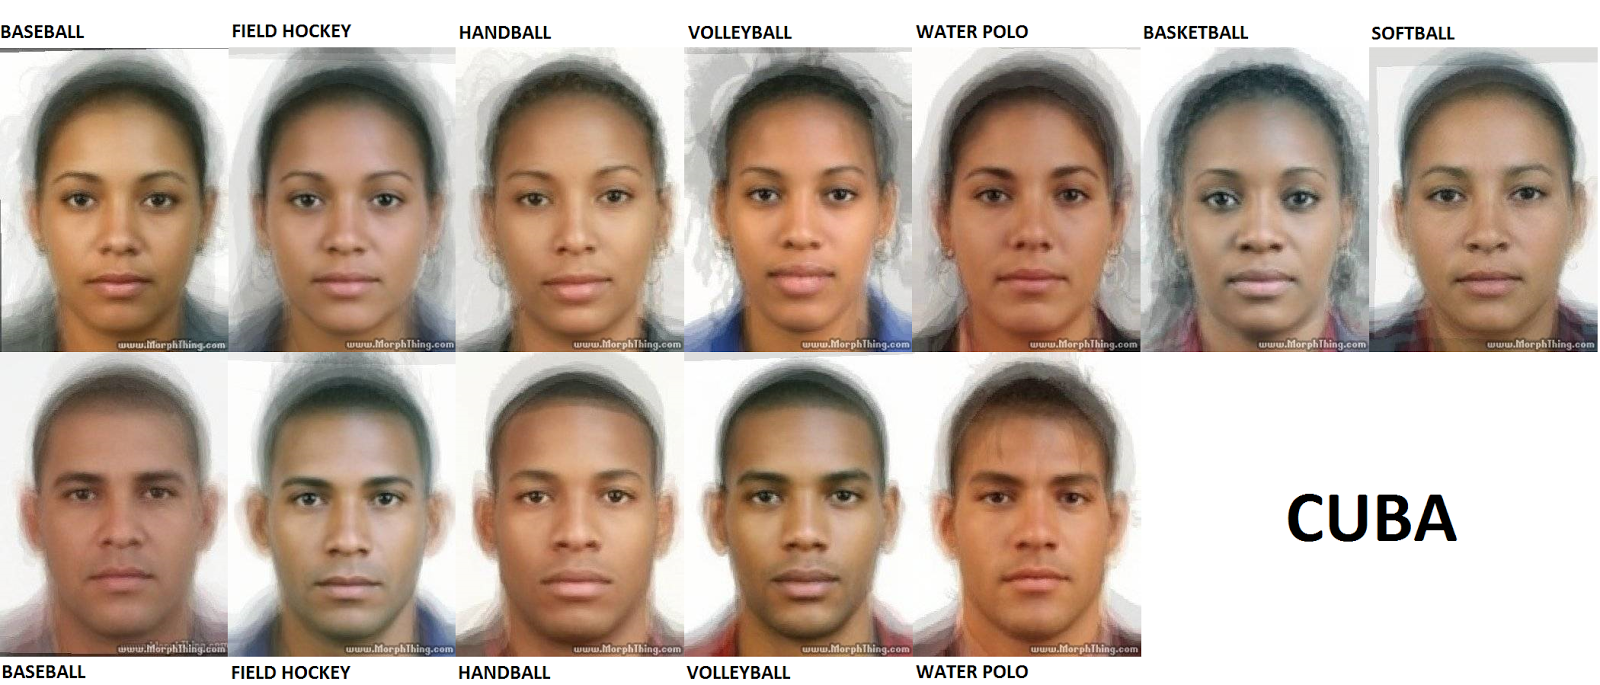 Cuban facial features